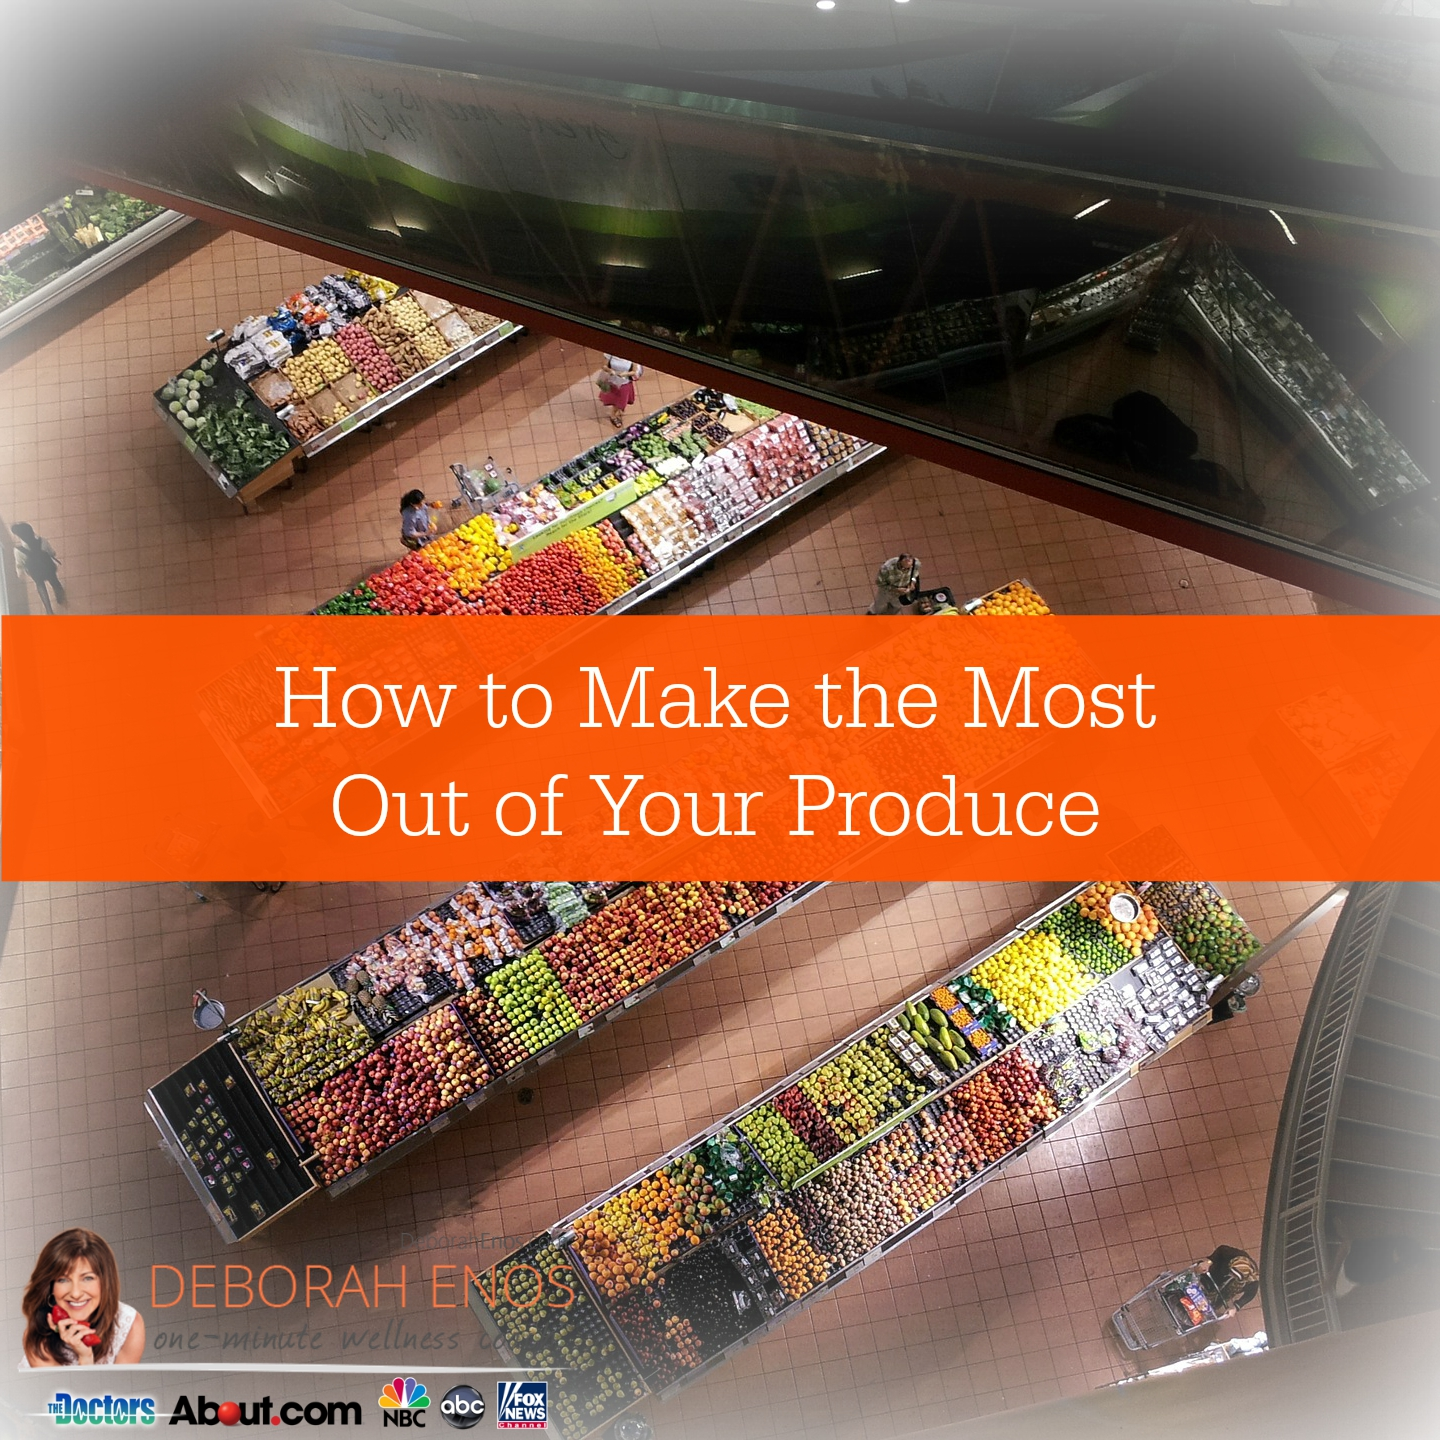 How to Make the Most Out of Your Produce